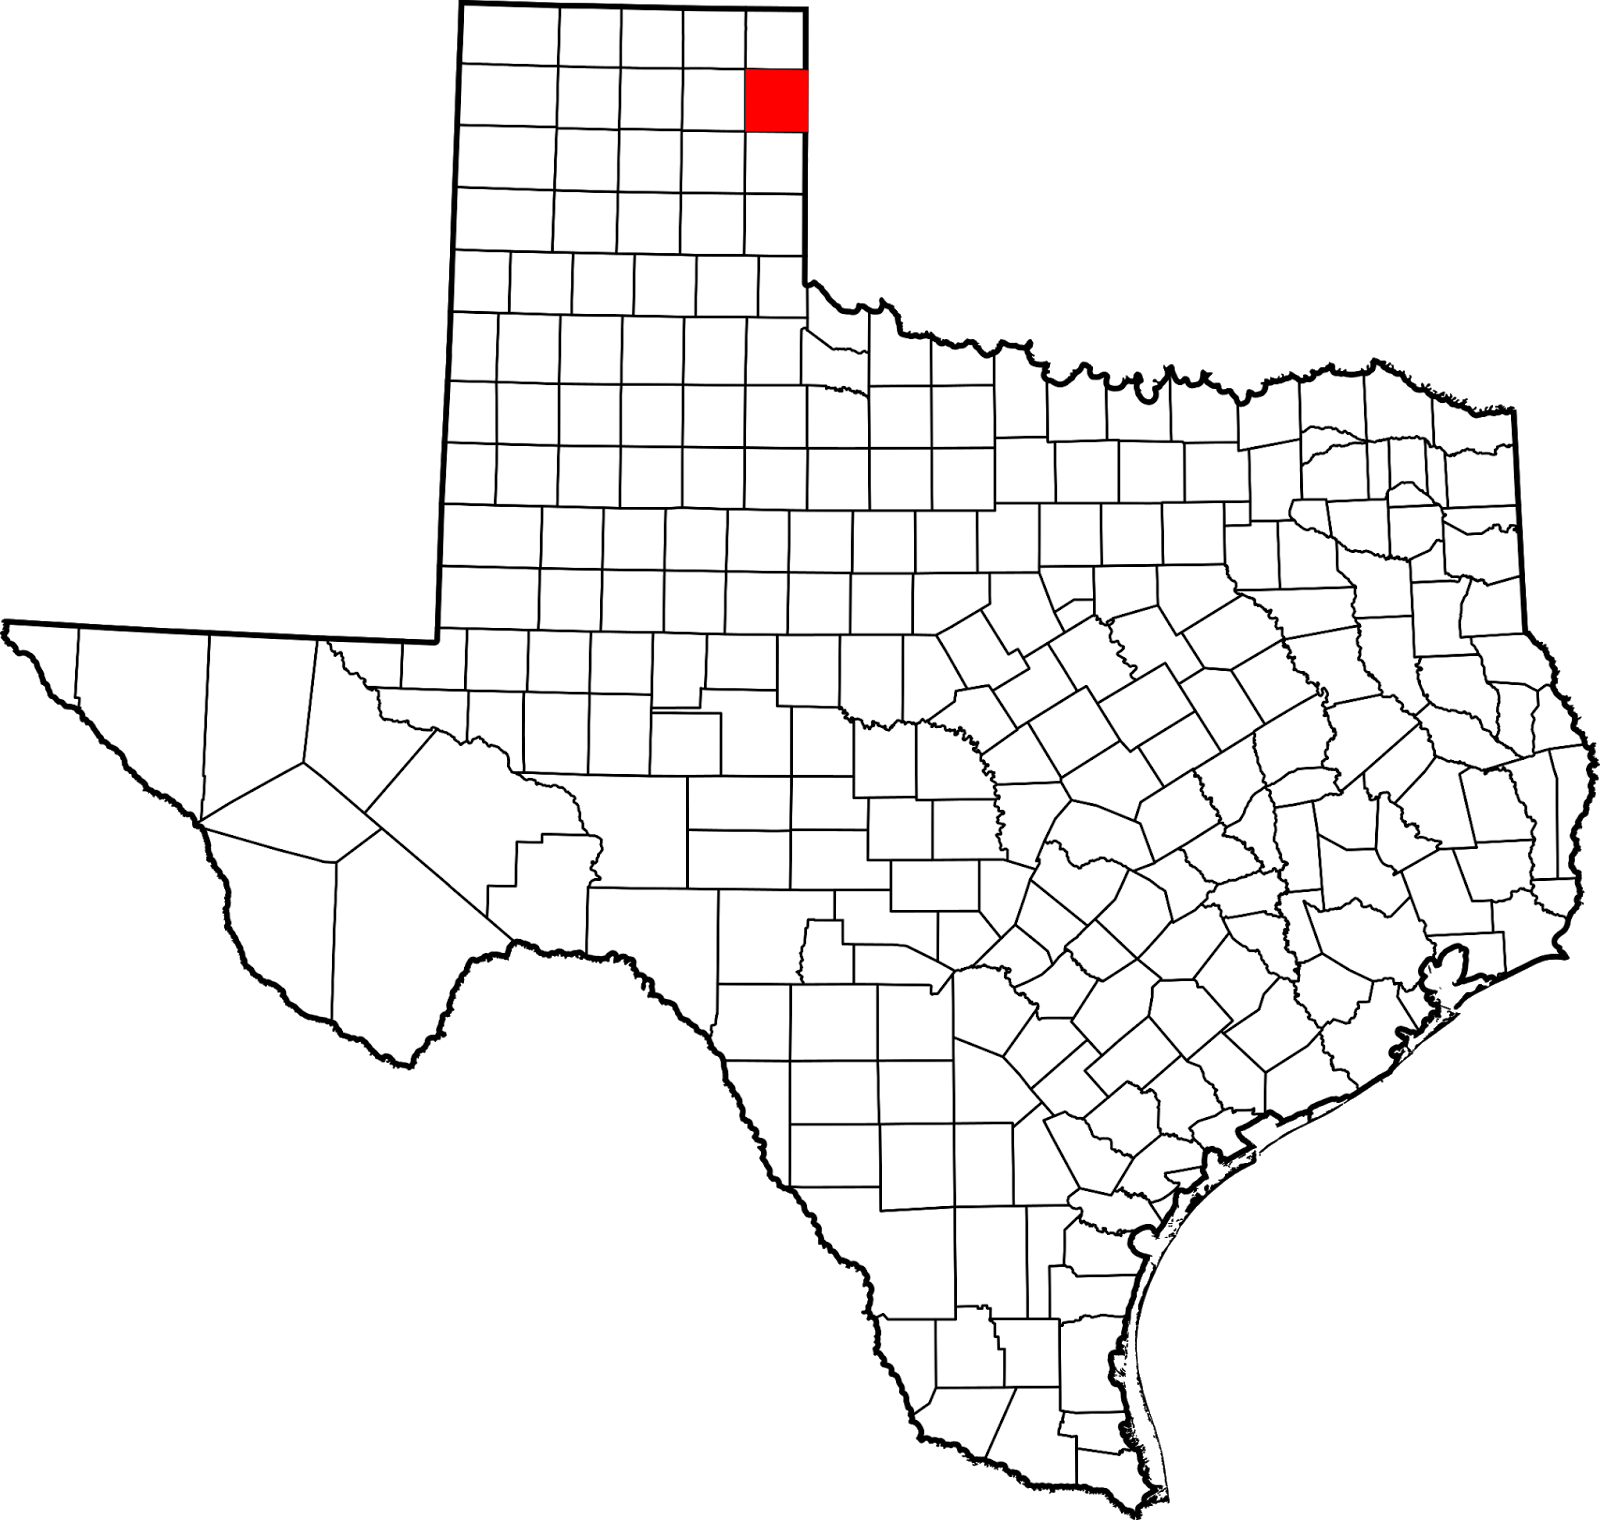 hemphill county Hemphill county, texas records free search for hemphill public records, county court records, inmate records, births, deaths, marriages, property records, find people and genealogy resources.